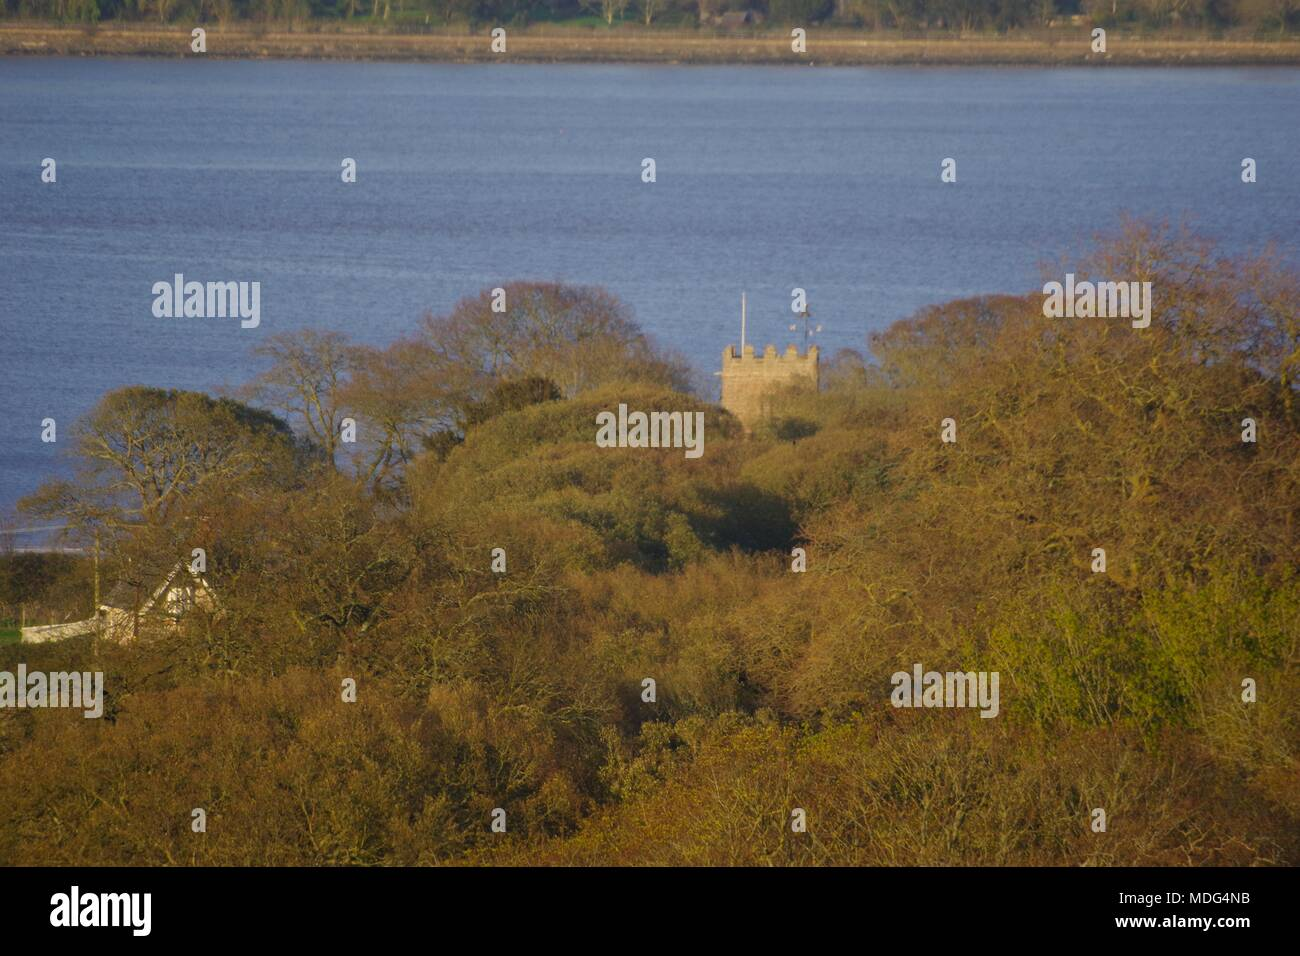 Stone Tower of St Clement's Church rising above the Leafless Oak Woodland Canopy in the Golden light of a Spring Evening with the Exe Estuary beyond. - Stock Image